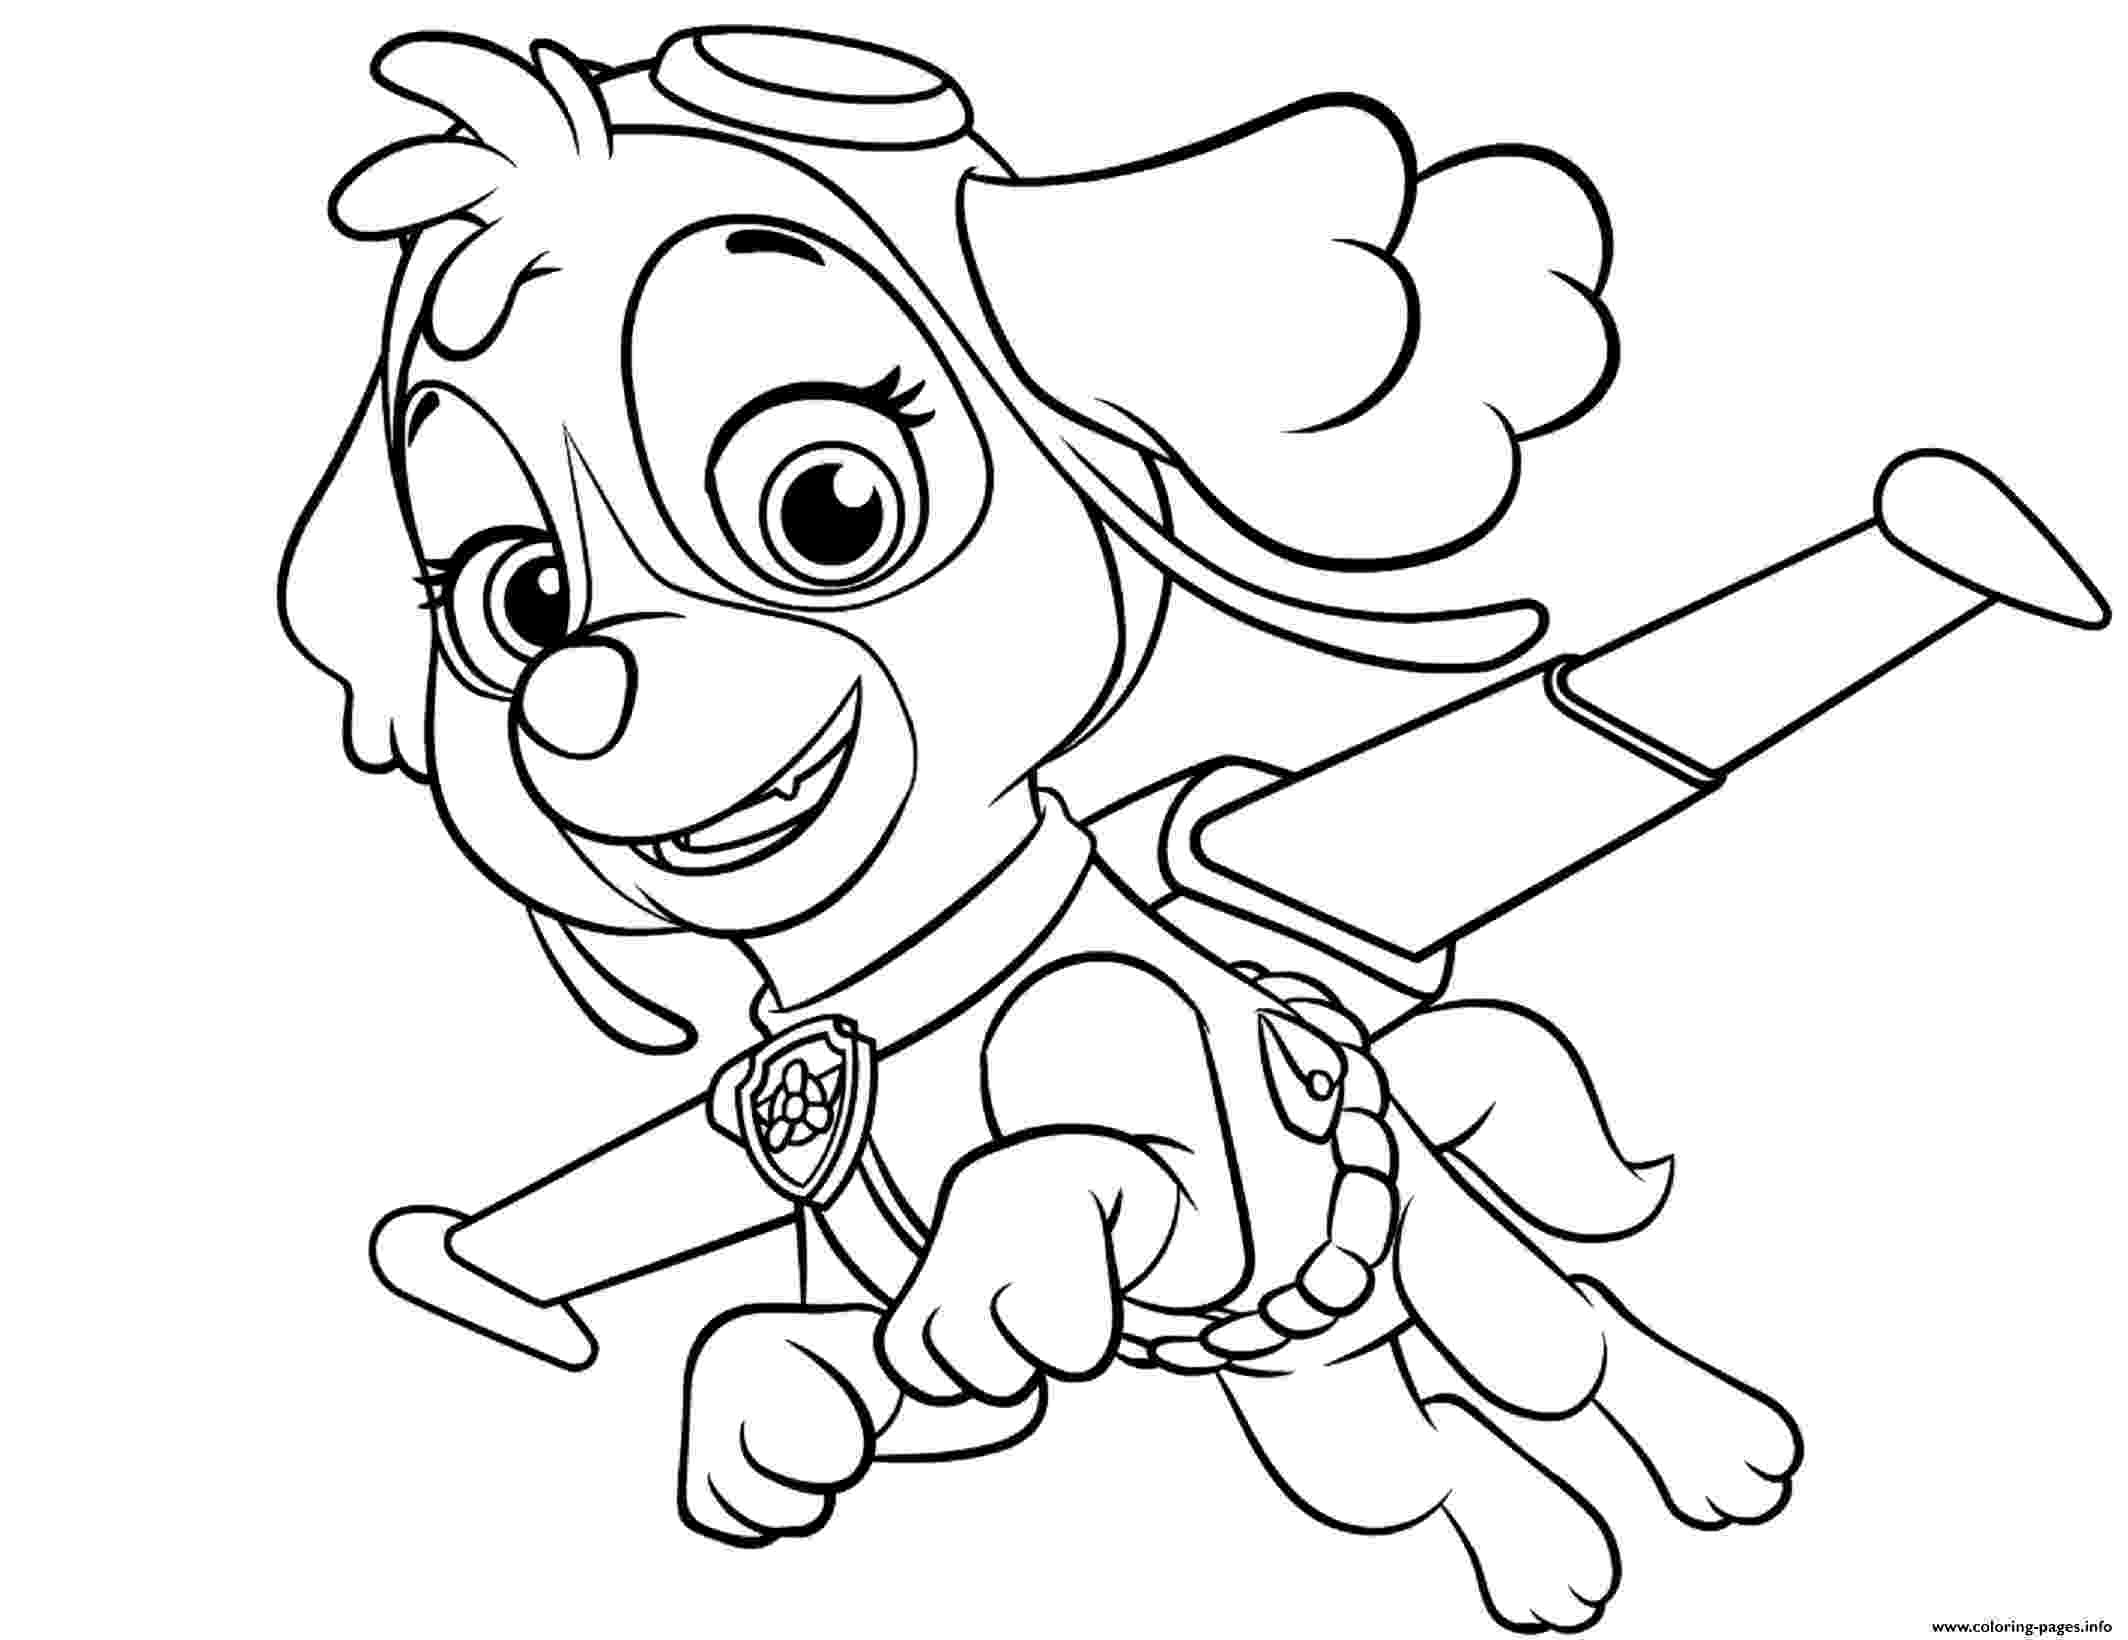 paw patrol coloring pages free paw patrol chase coloring page free printable coloring pages patrol free pages coloring paw